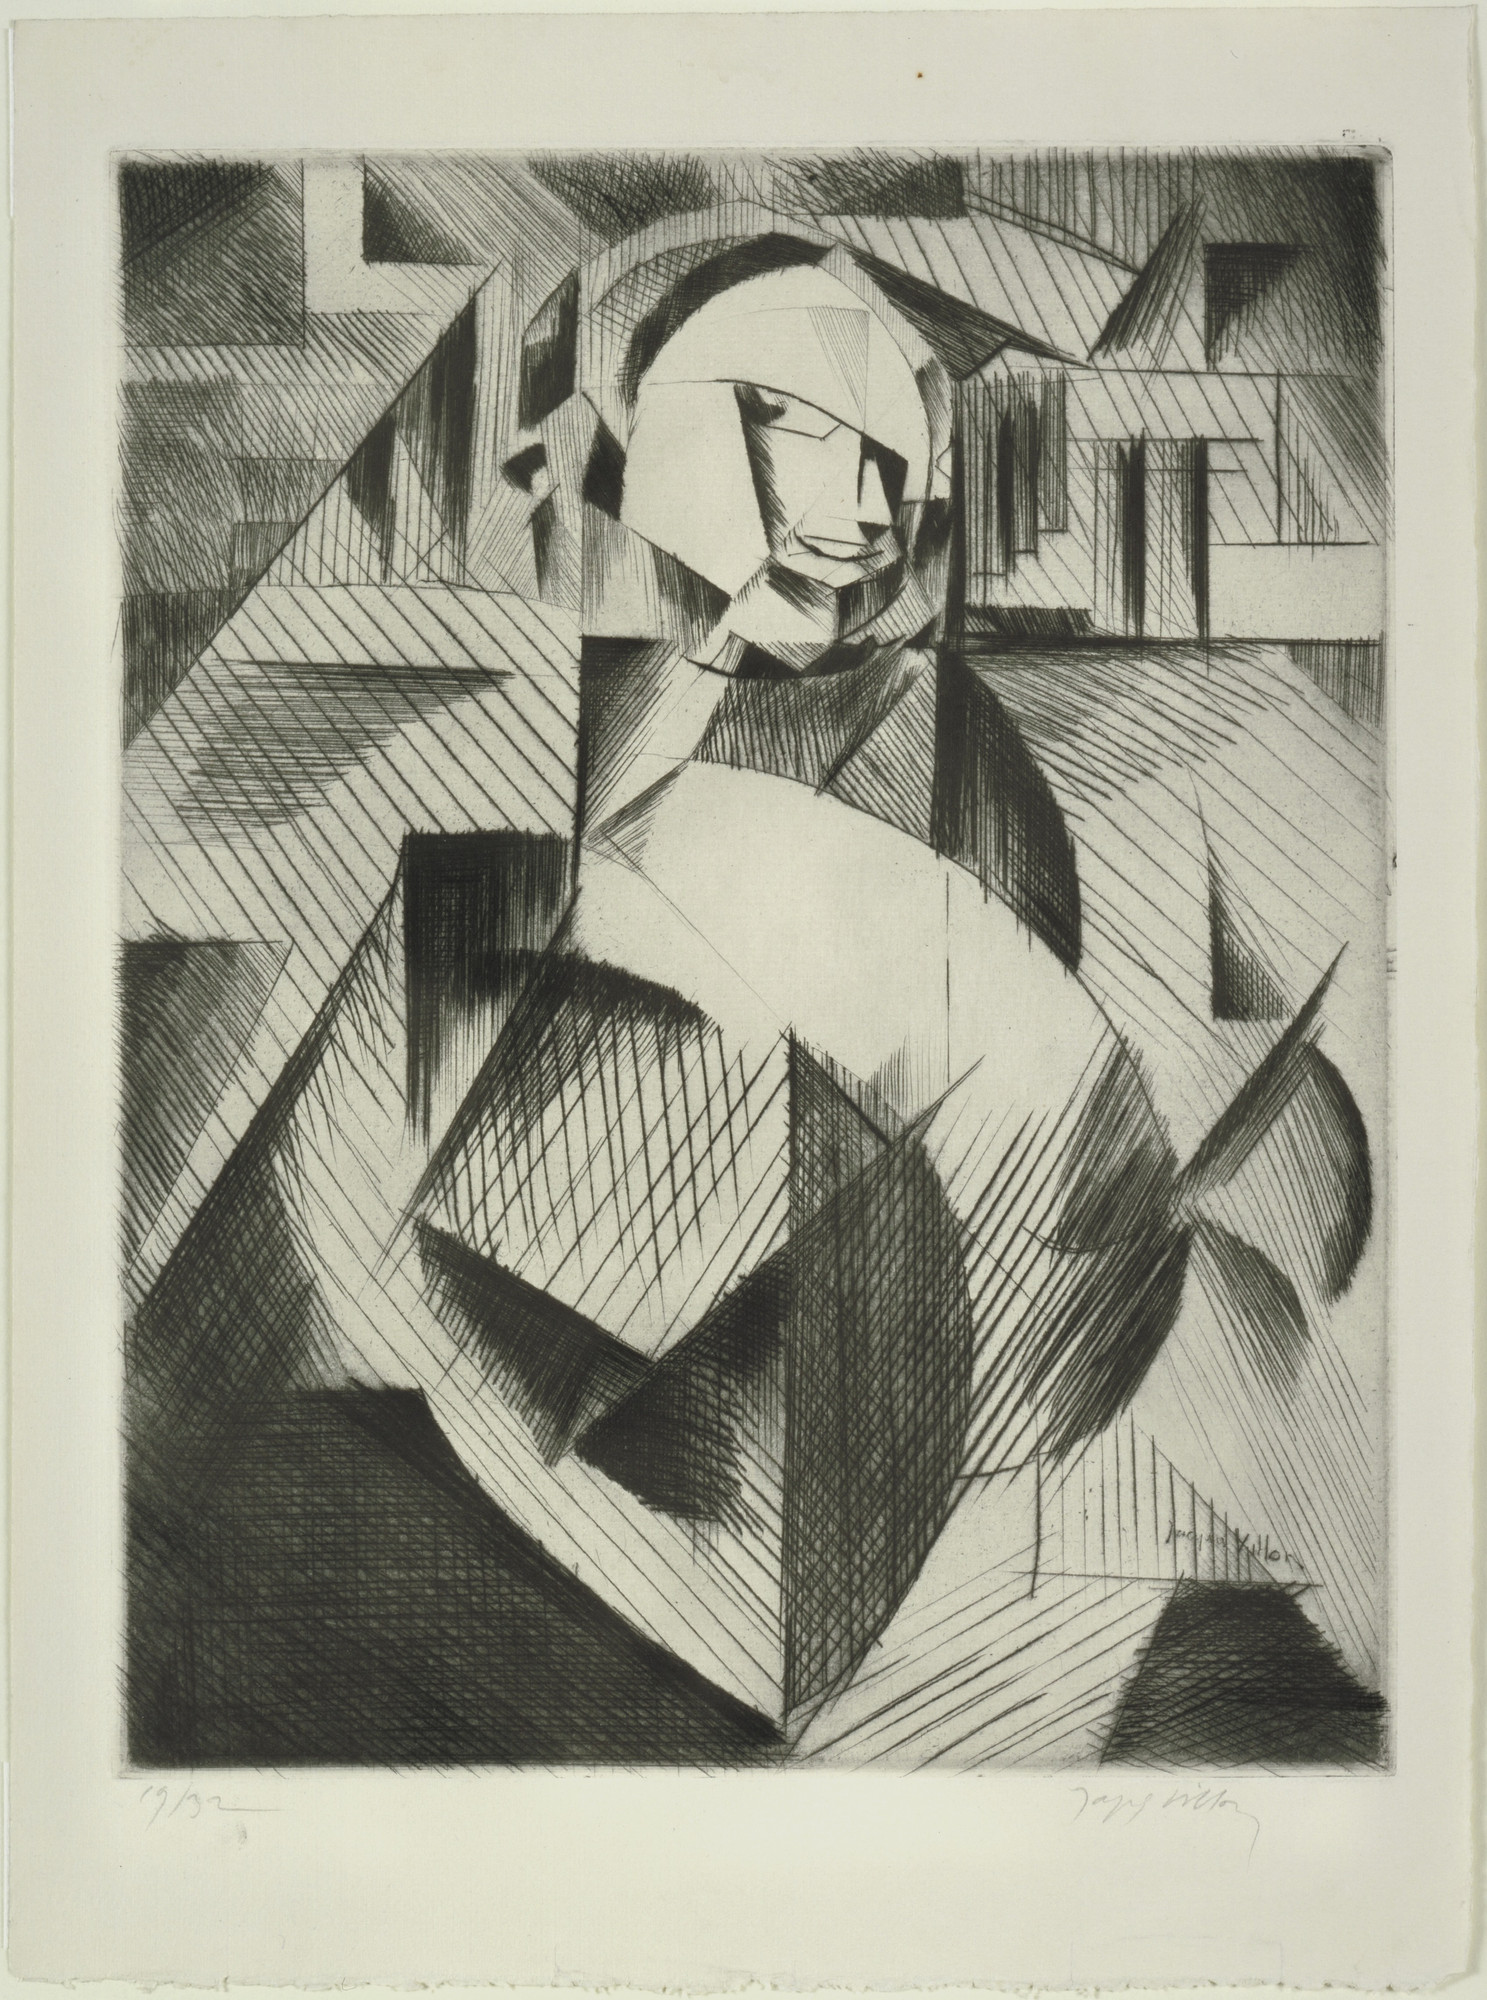 Jacques Villon. Portrait of an Actor (Félix Barré) [Portrait de un acteur (Félix Barré)]. 1913